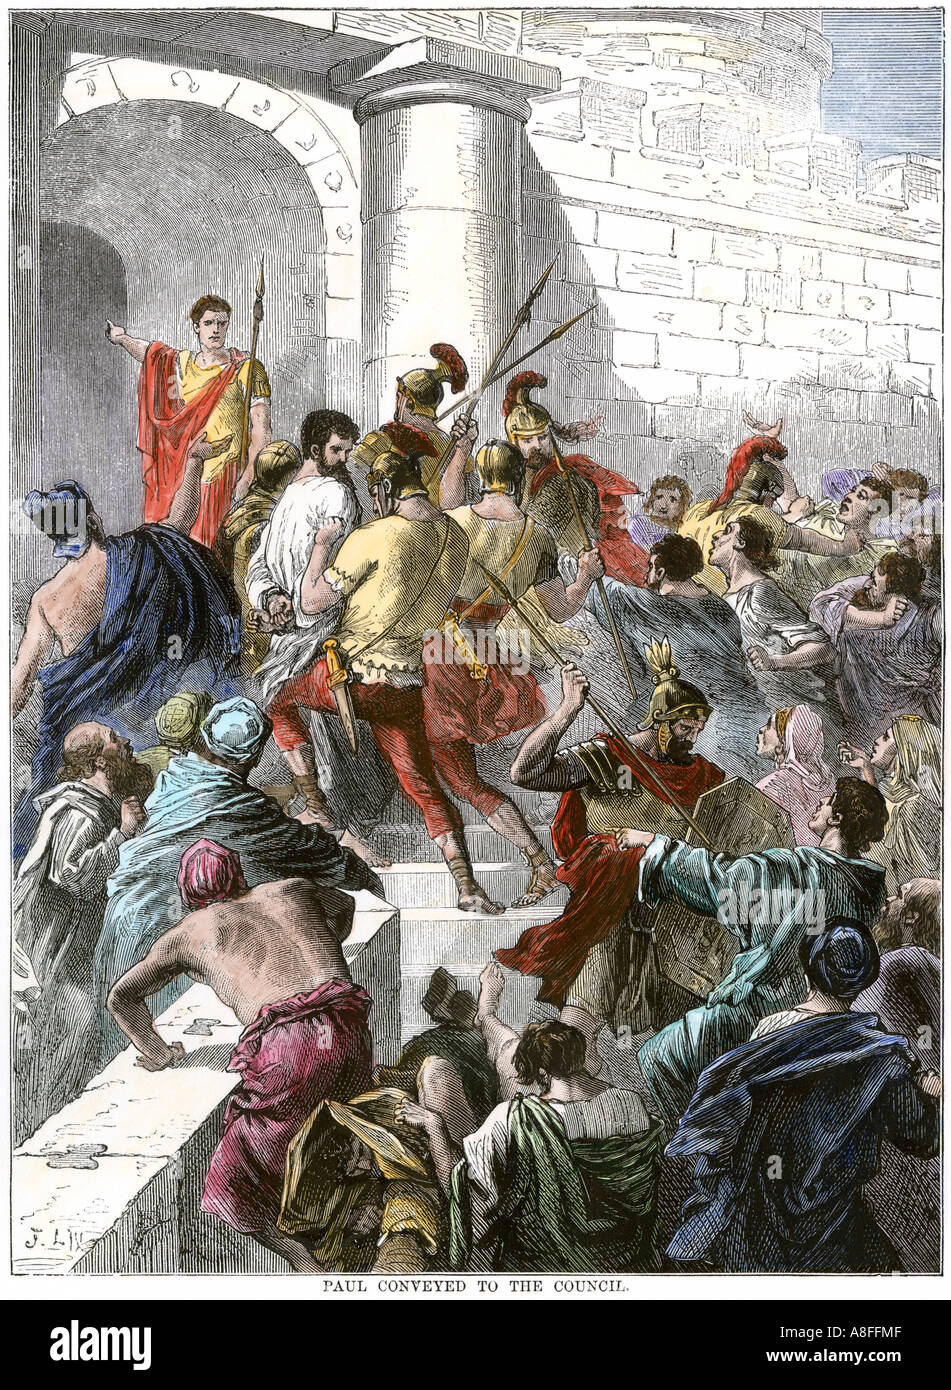 Paul arrested in Jerusalem and taken to the Roman authorities. Hand-colored woodcut - Stock Image